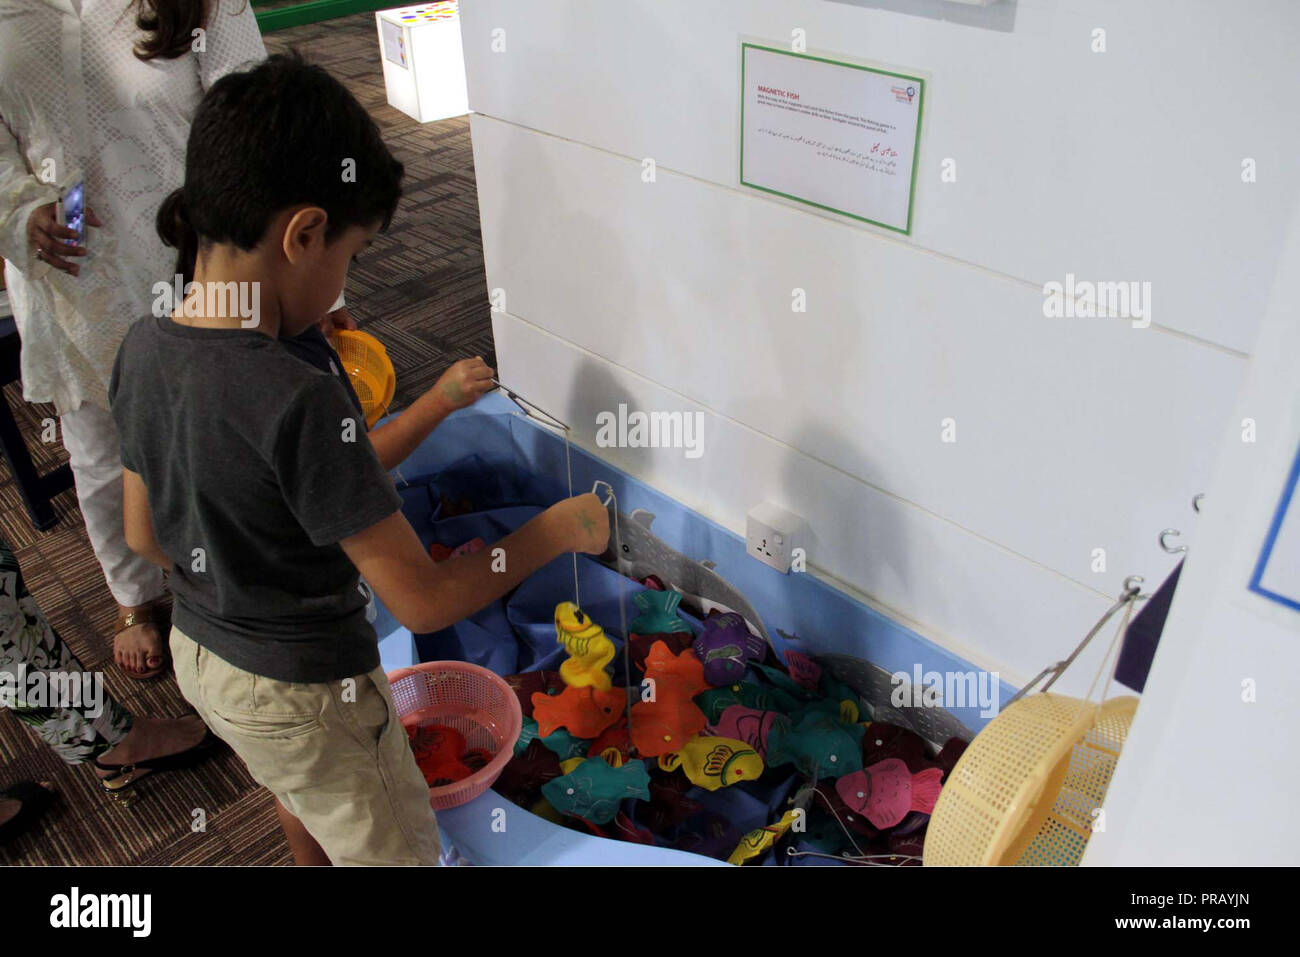 The Science Of Getting Kids Organized >> Children Taking Keen Interest During Steam Science Technology